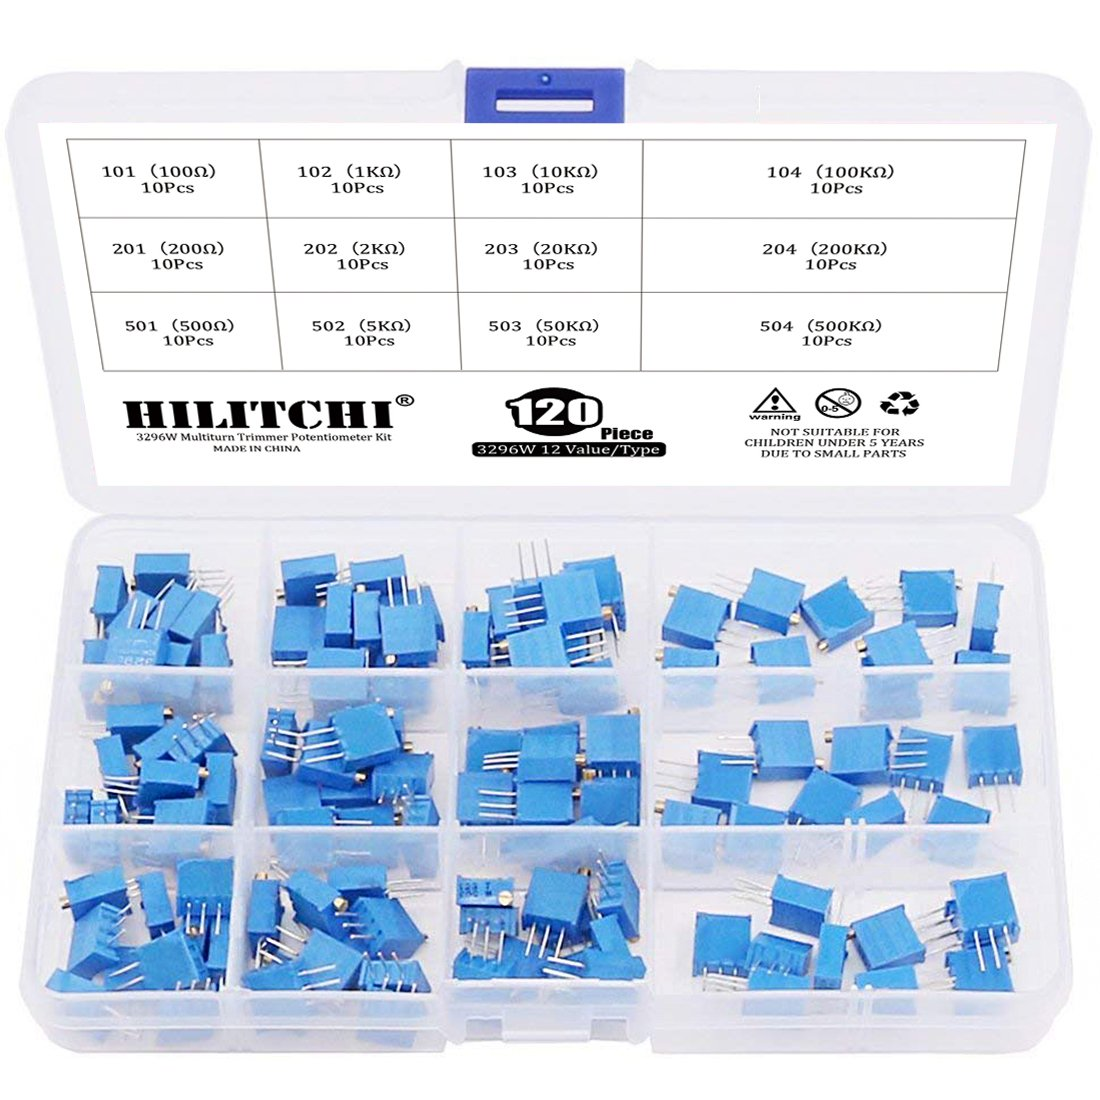 Hilitchi 120-Pcs [100 to 500K] ohm 3296W Multiturn Trimmer Potentiometer Assortment Kit - [12 Value]